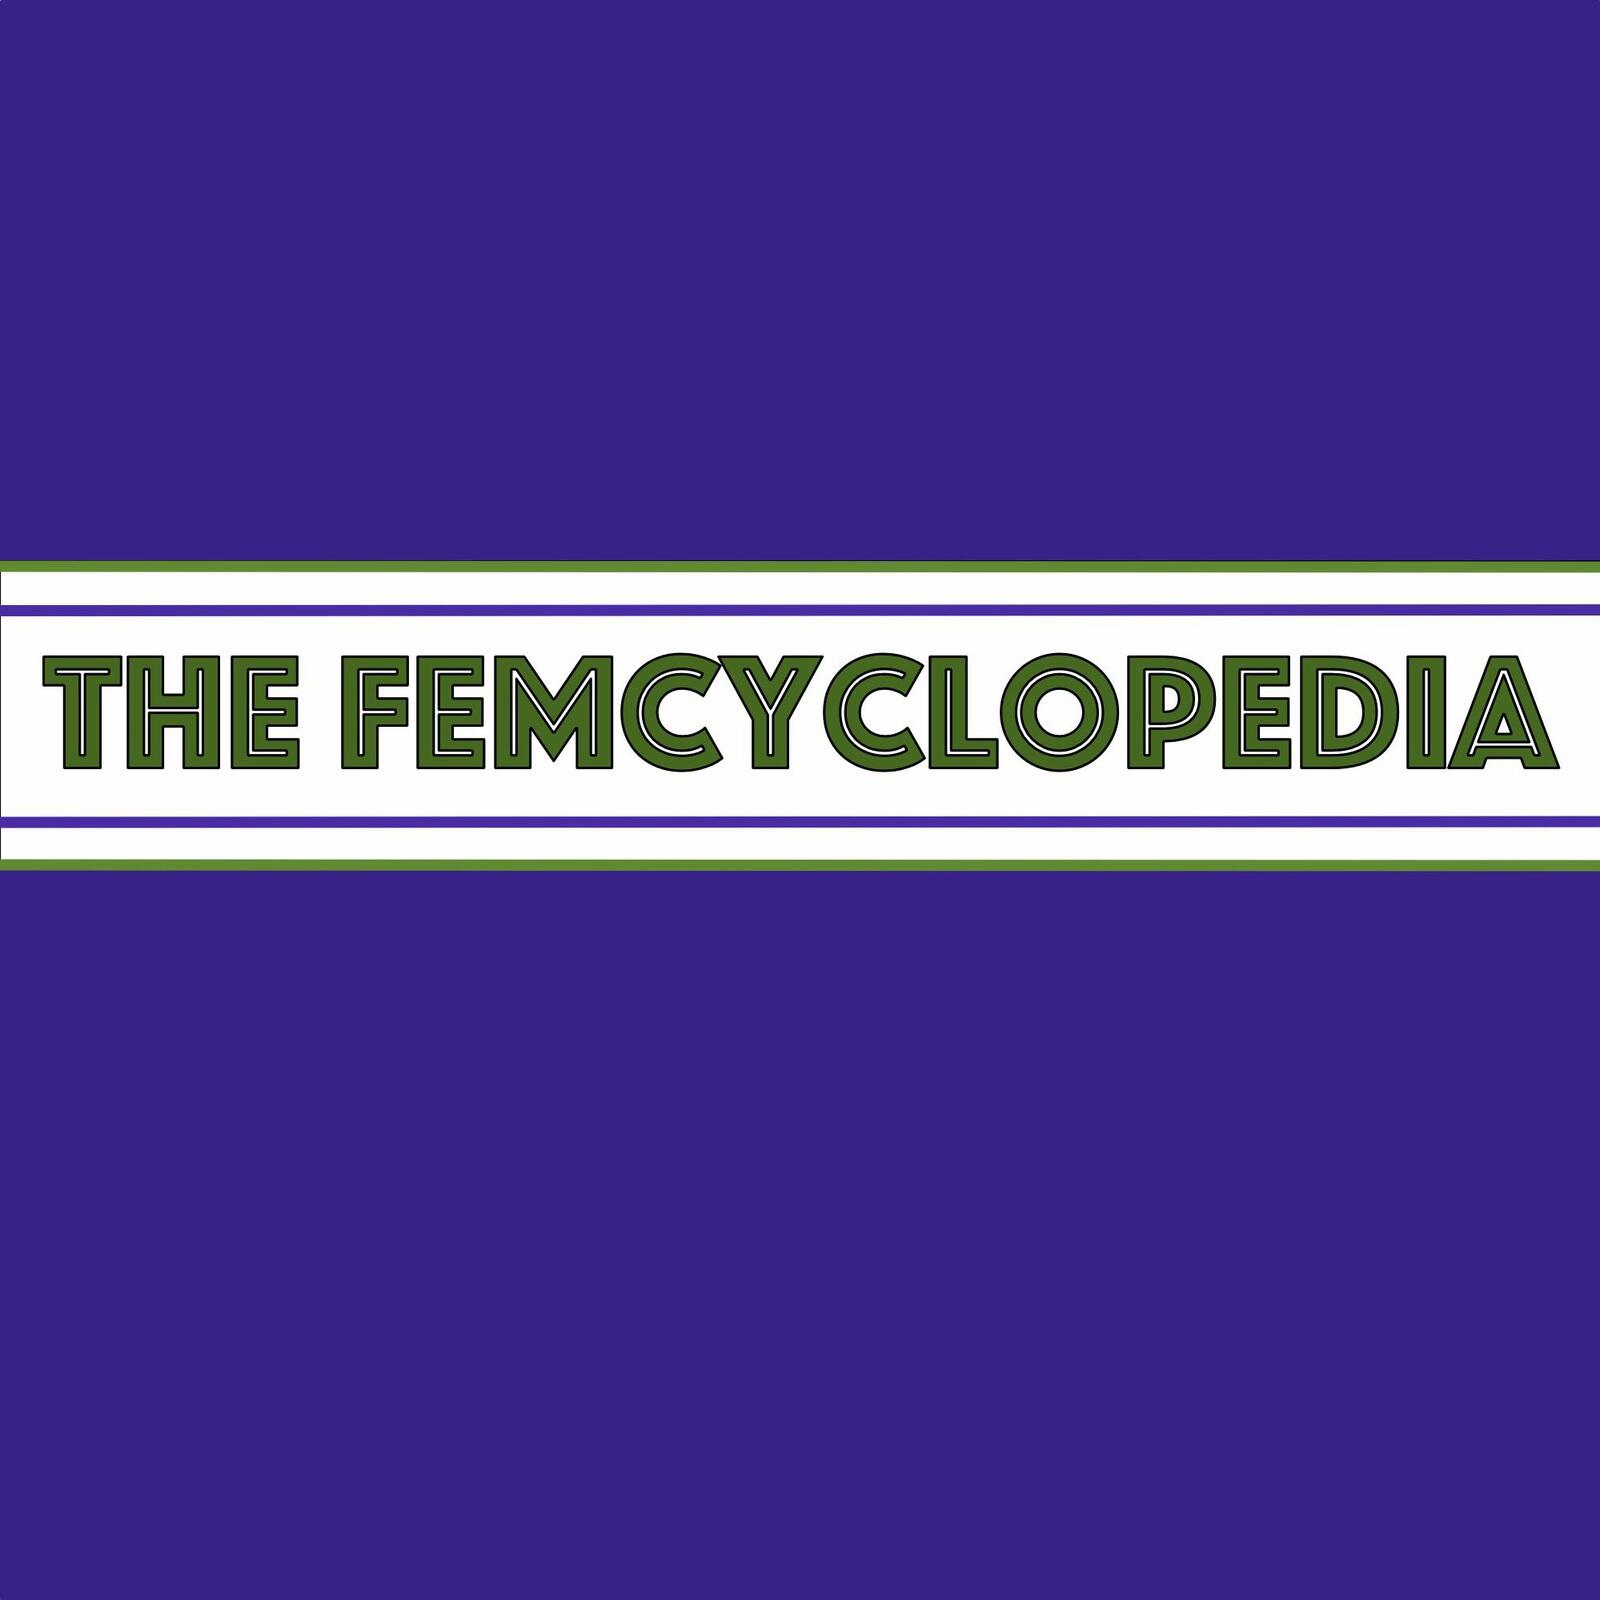 The Femcyclopedia